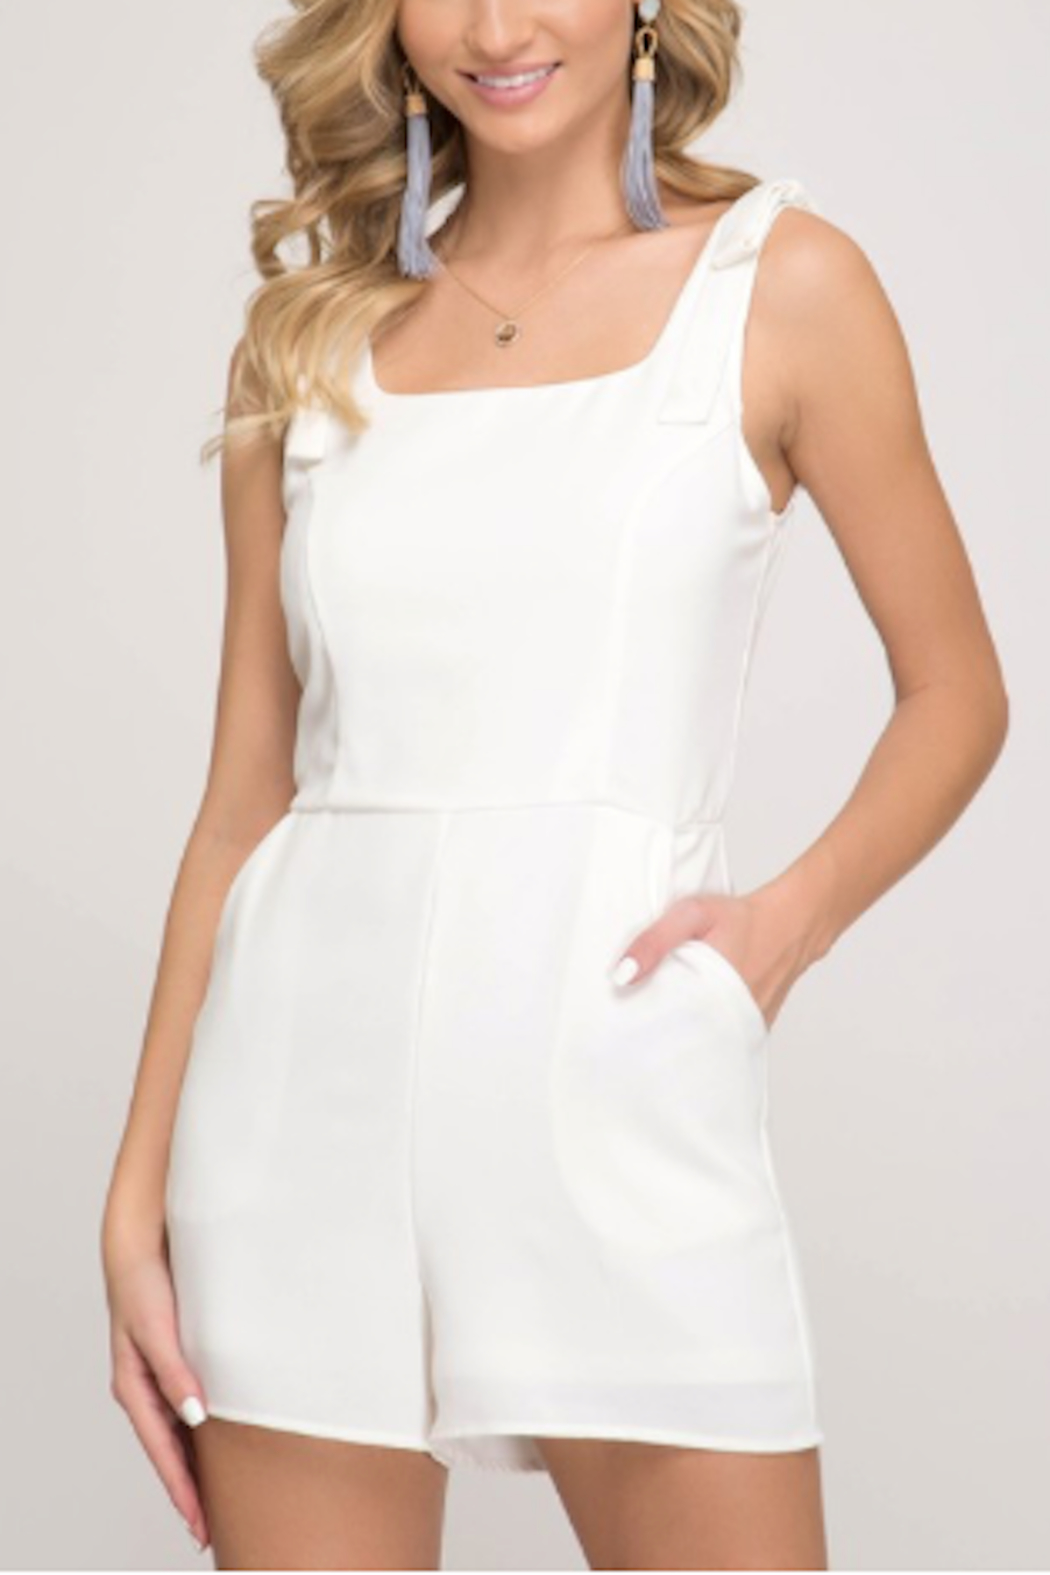 She & Sky  Bri Shoulder Tie Romper - Main Image